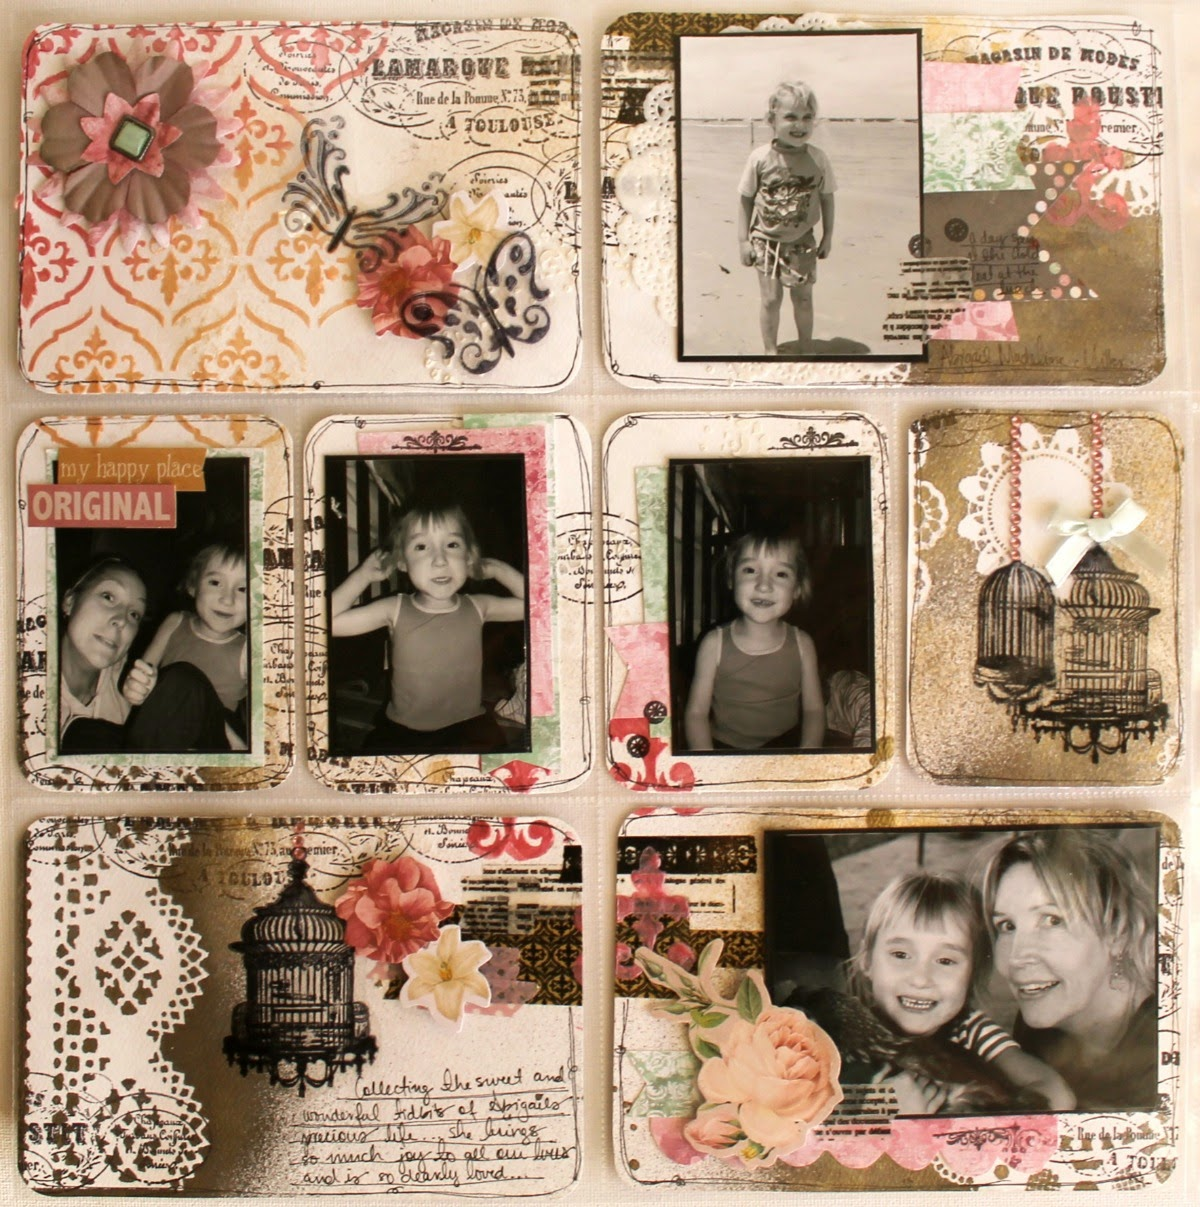 Abigail Misc Me Spread by Bernii Miller using BoBunny Sticky Stencils and Madeline Collection.